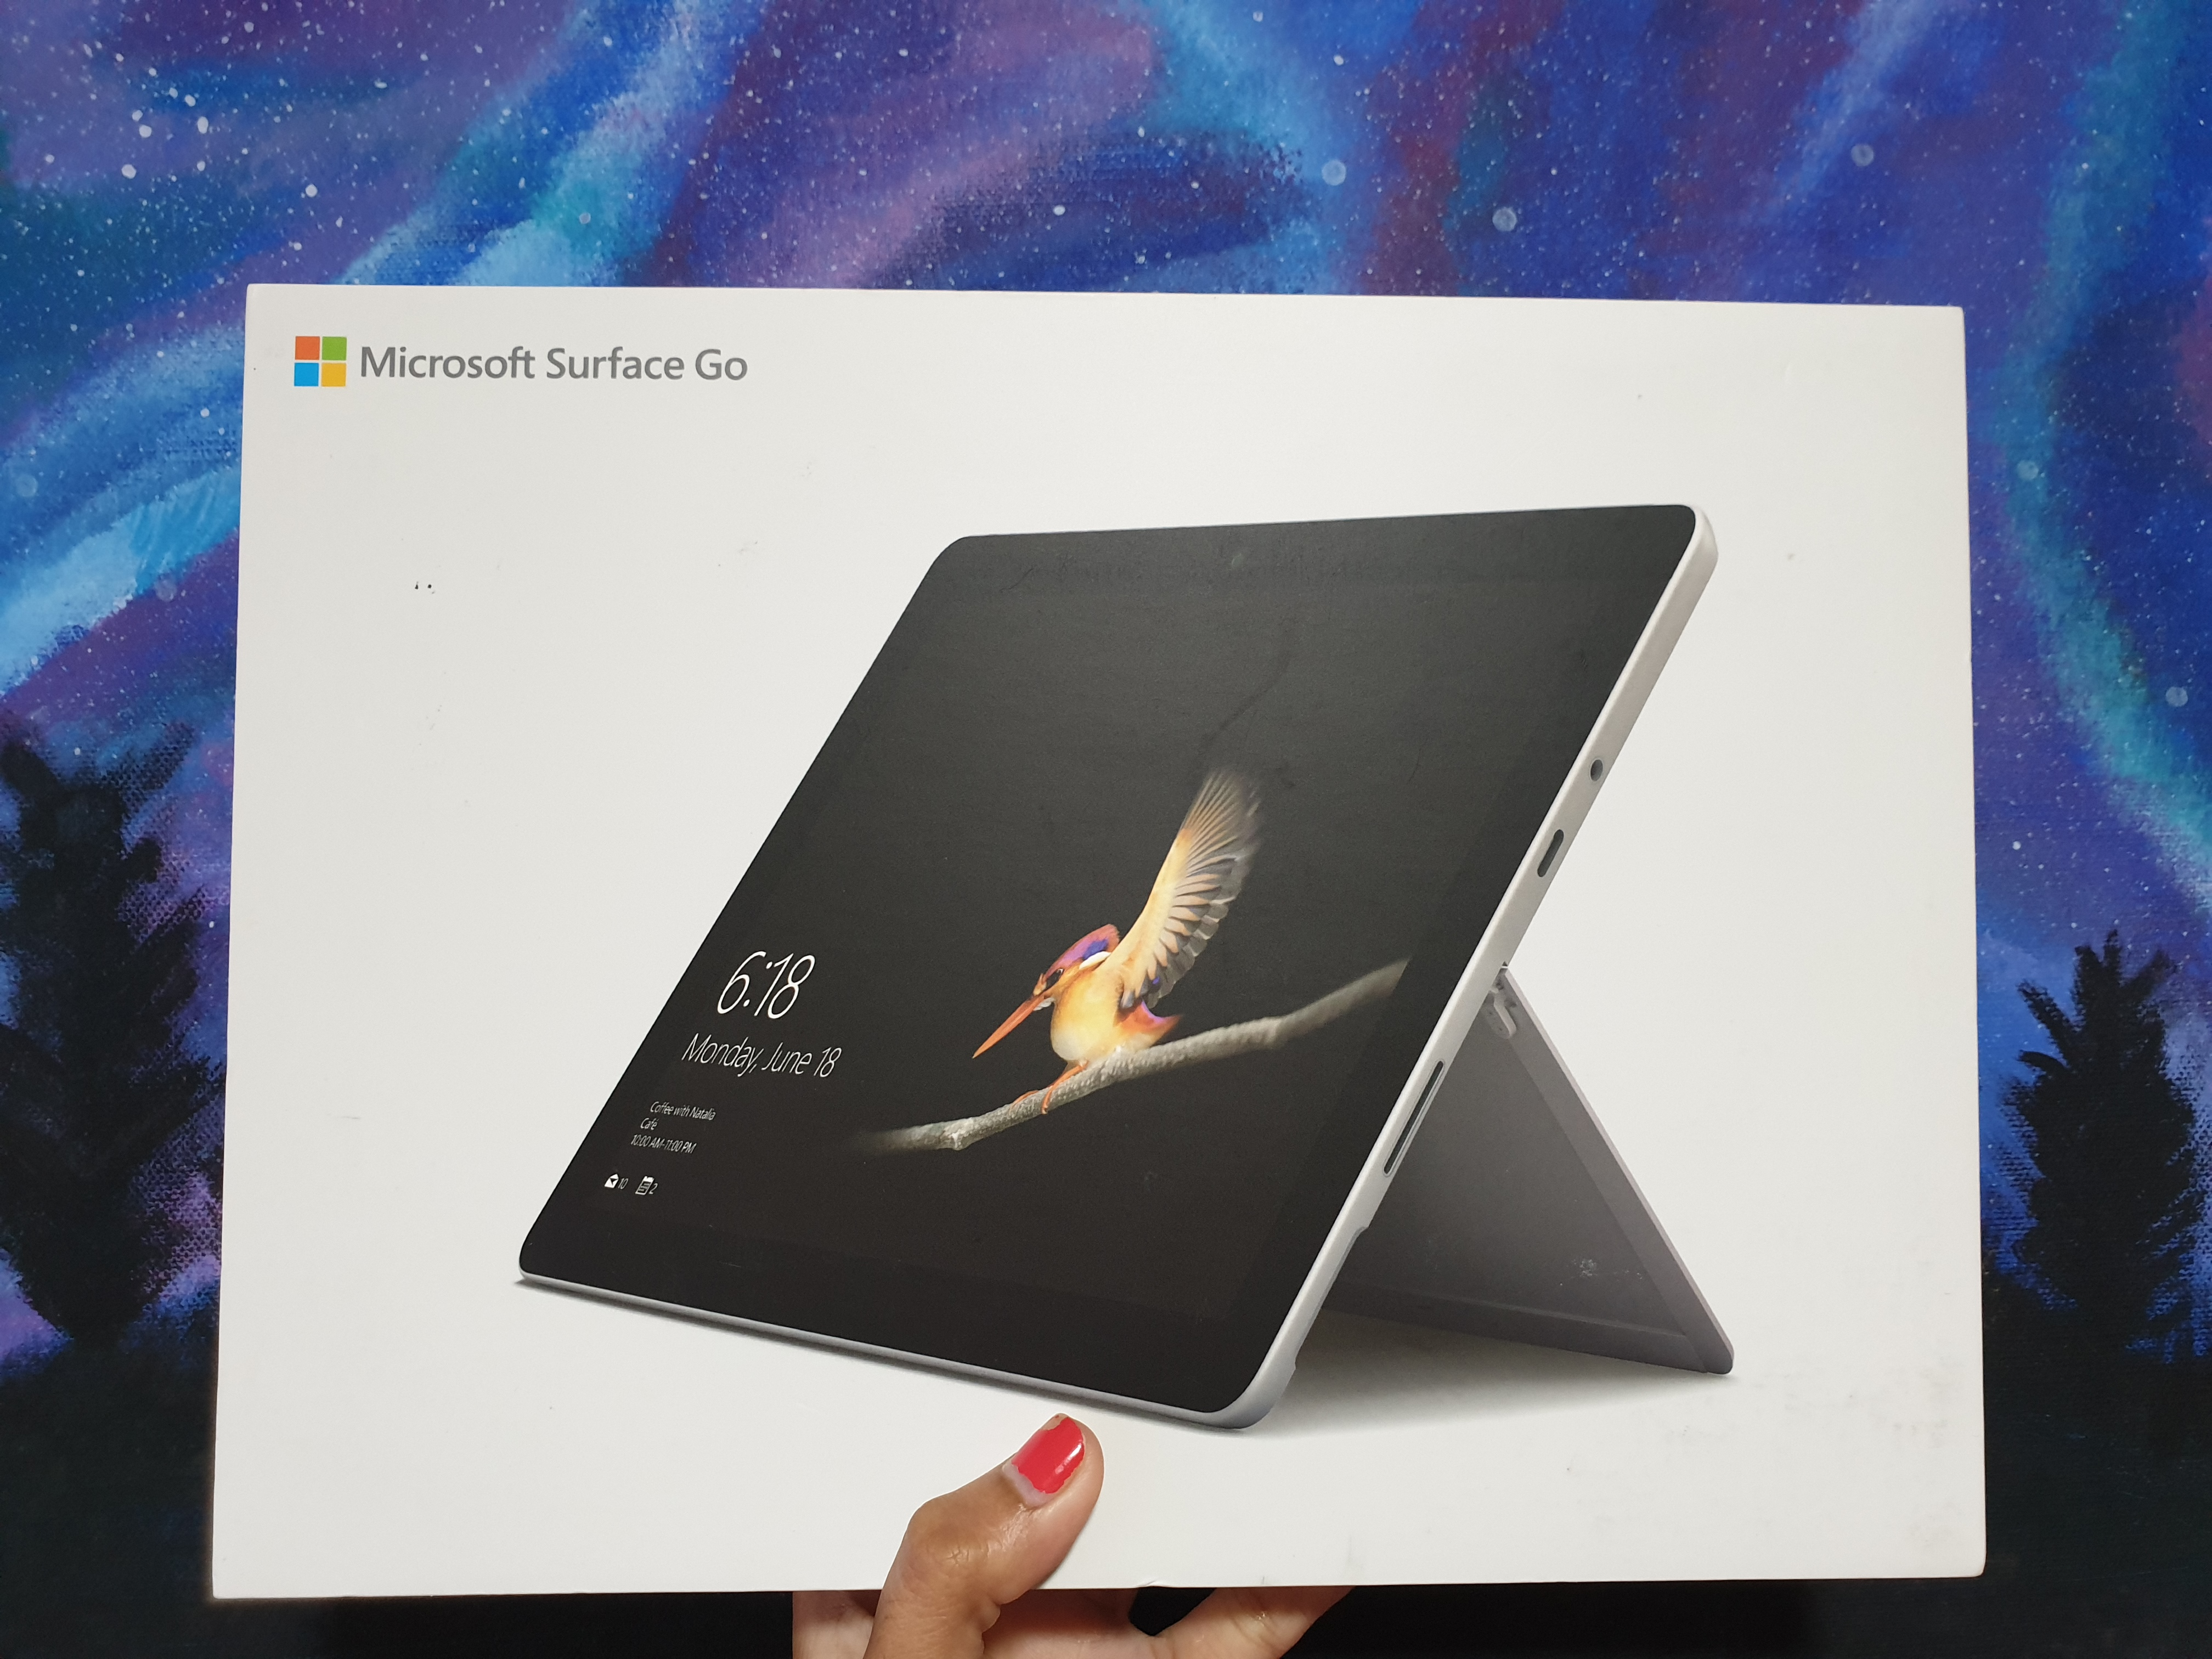 Microsoft Surface Go - Reviewed - The Technovore